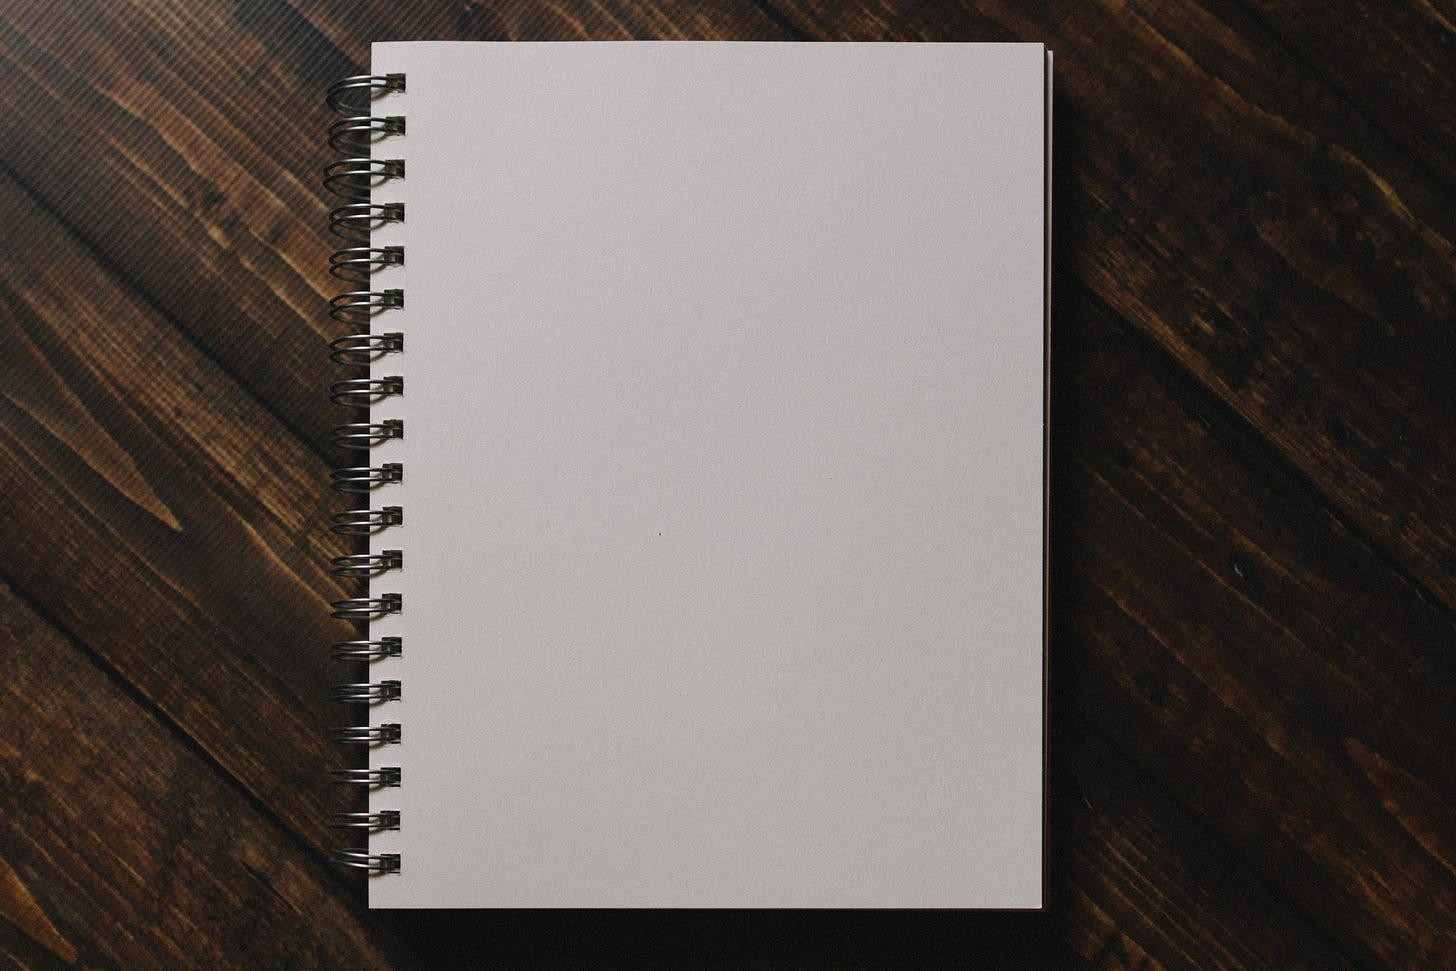 White notebook on brown wooden table.